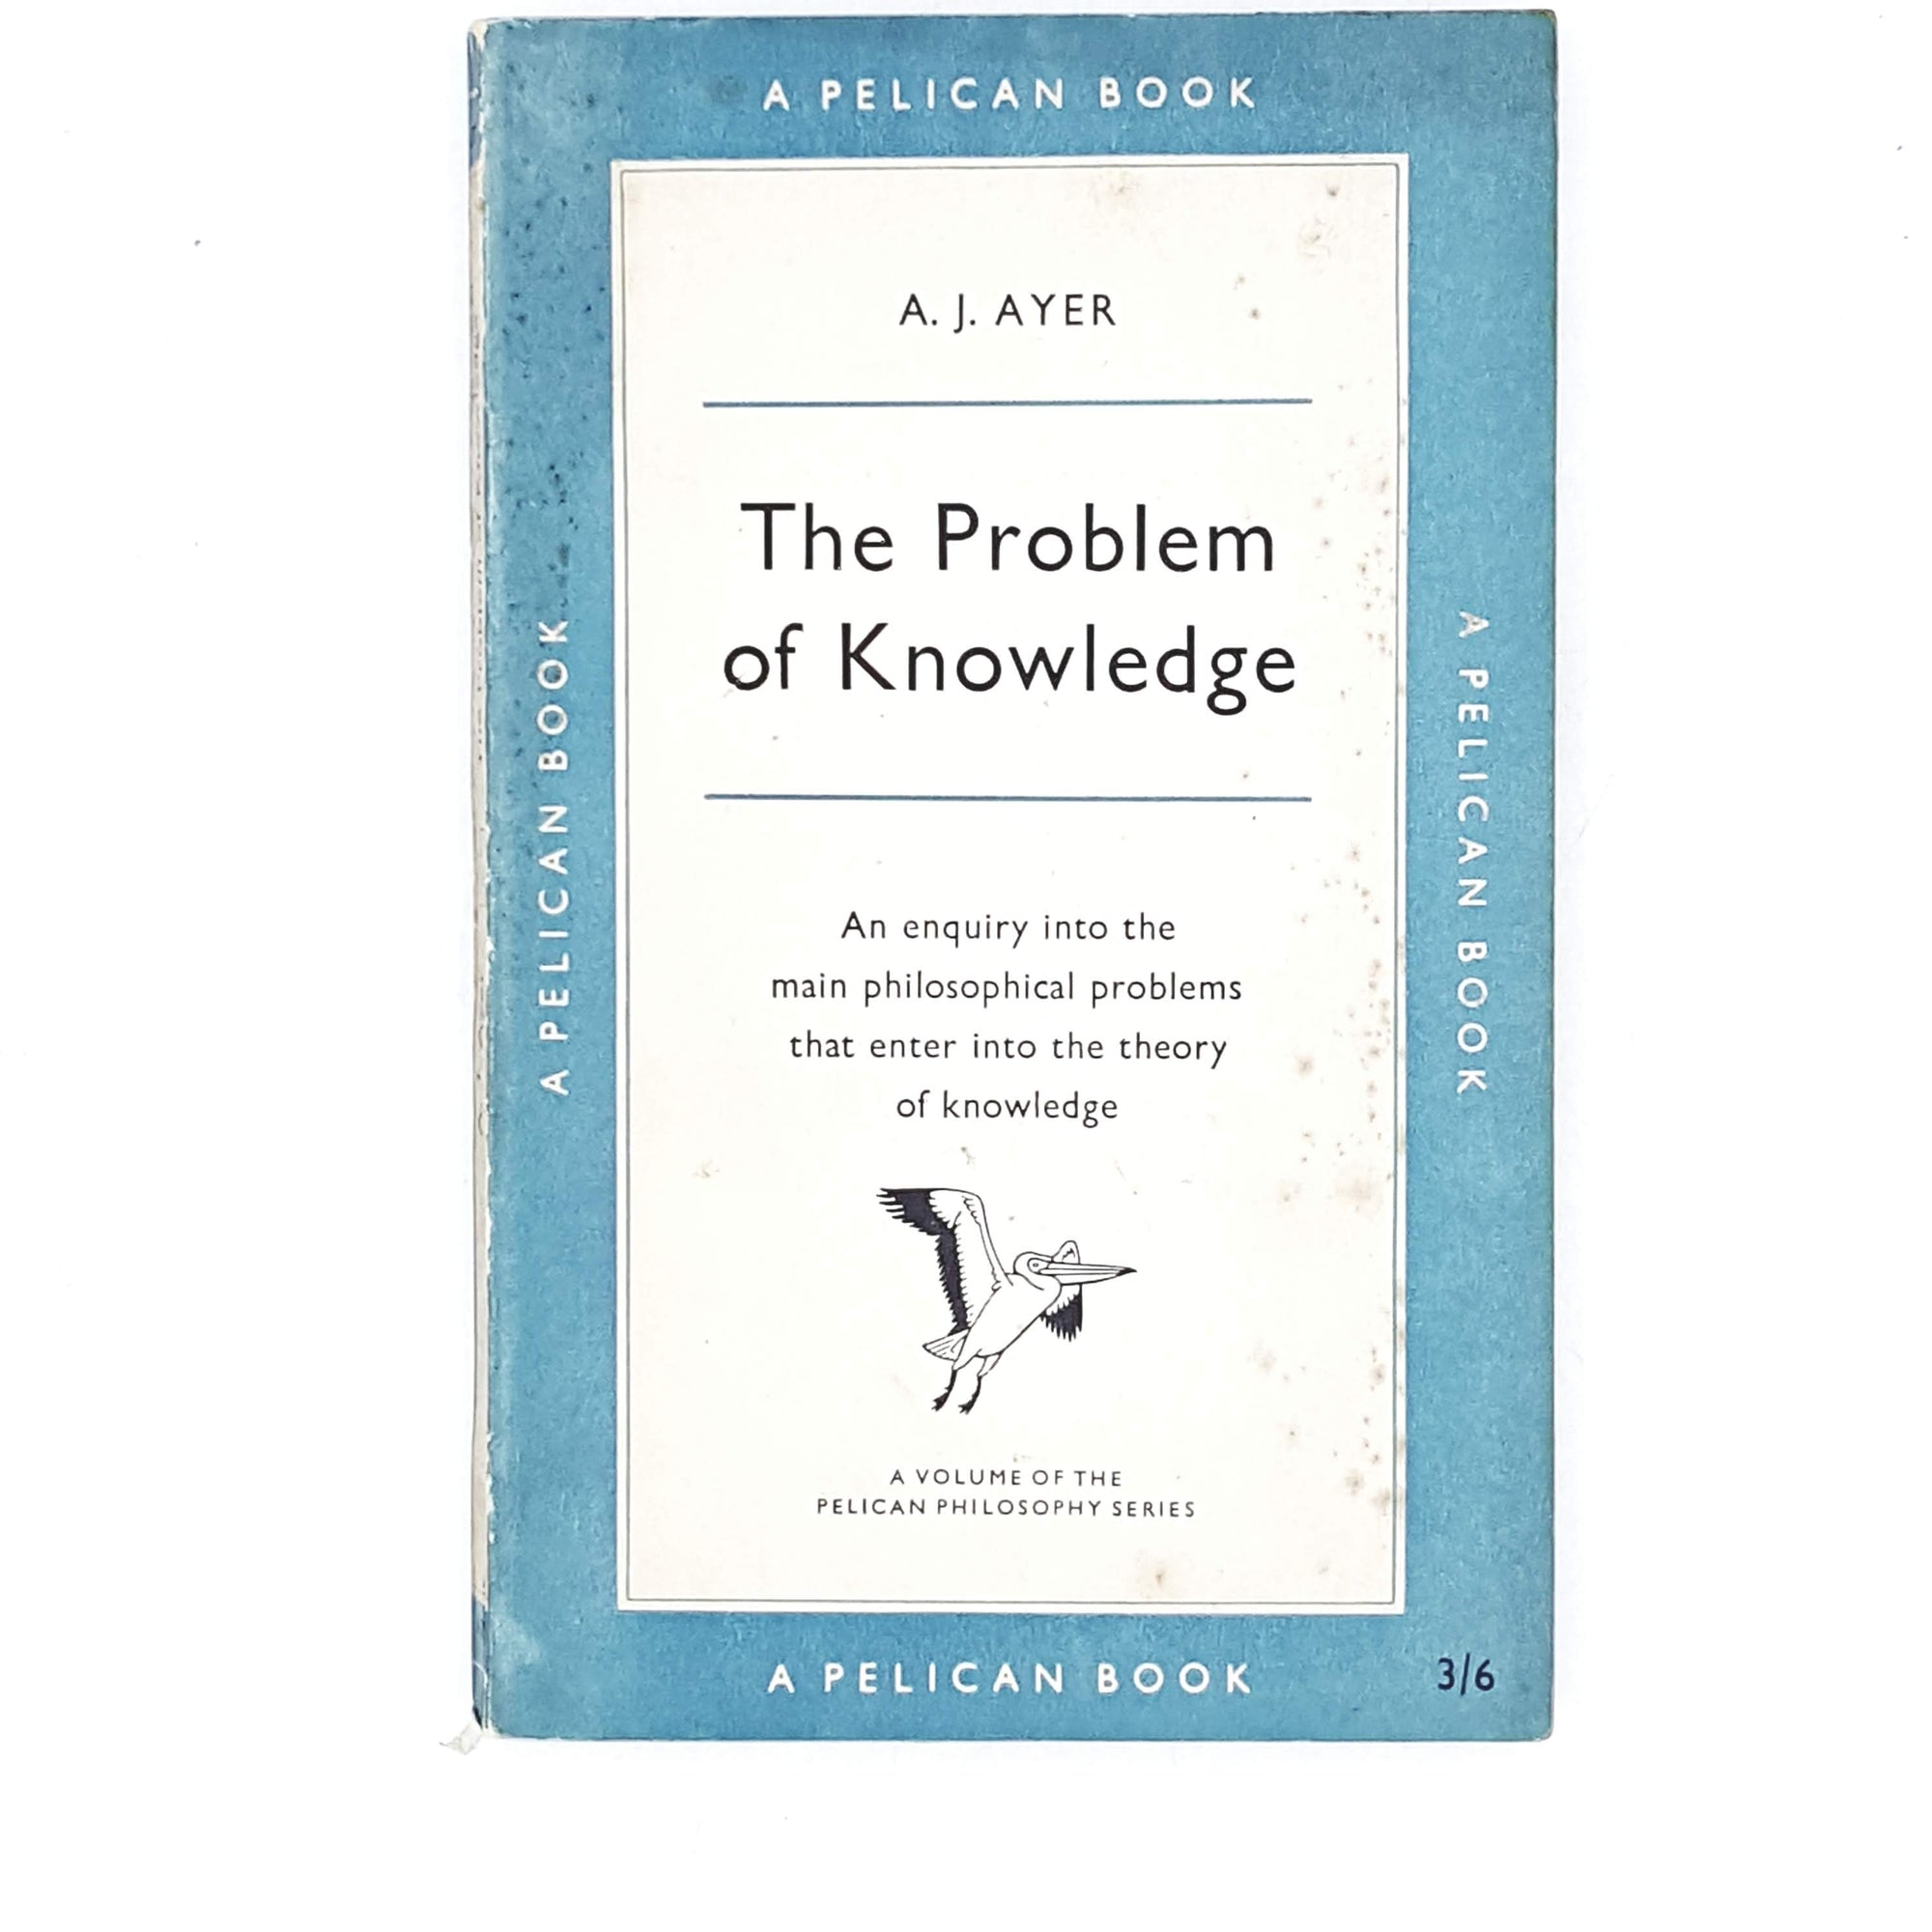 vintage-pelican-the-problem-of-knowledge-by-a.-j.-ayer-1956-pale-blue-country-house-library